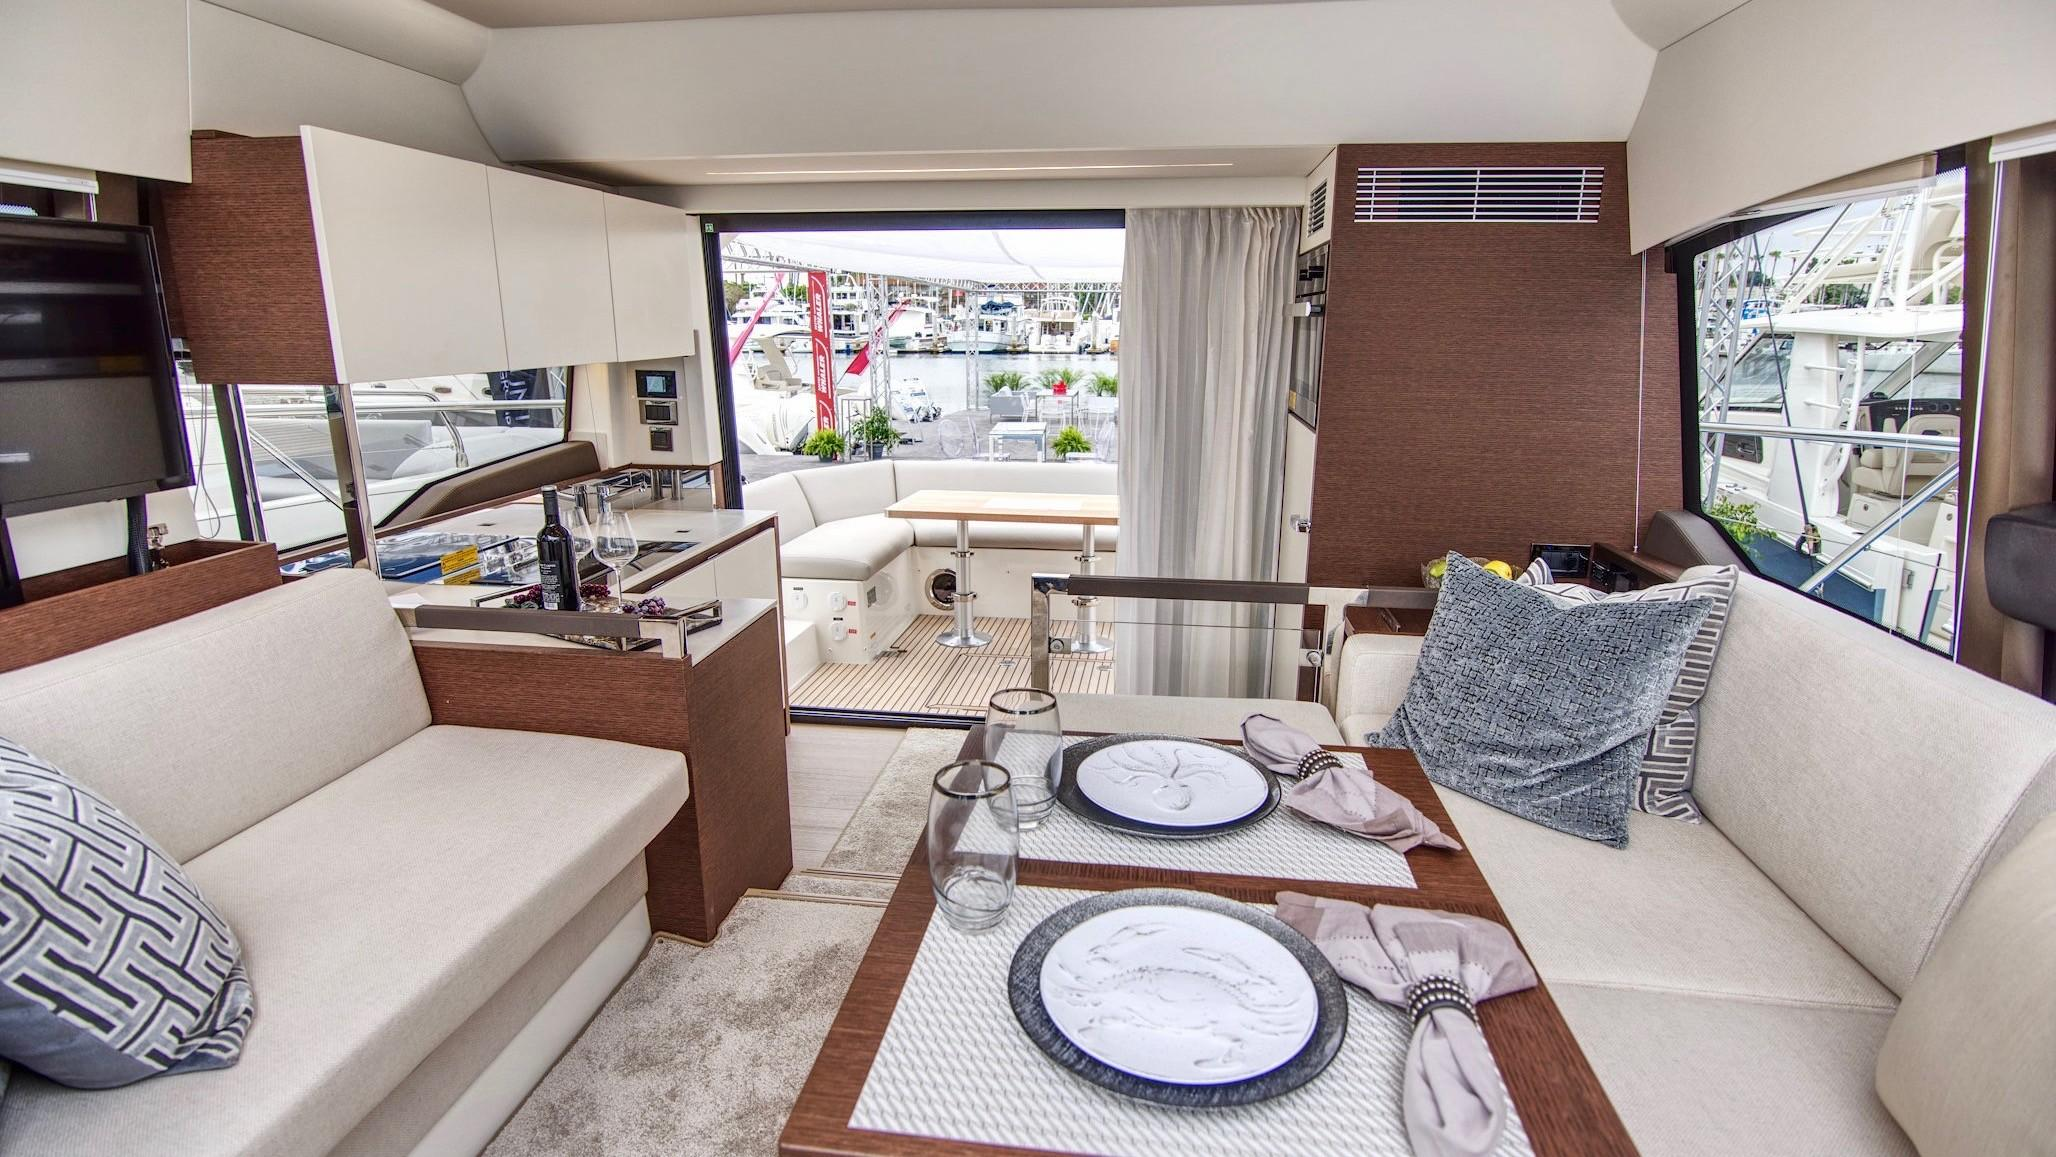 2019 Prestige 460 S #T105R inventory image at Sun Country Coastal in San Diego